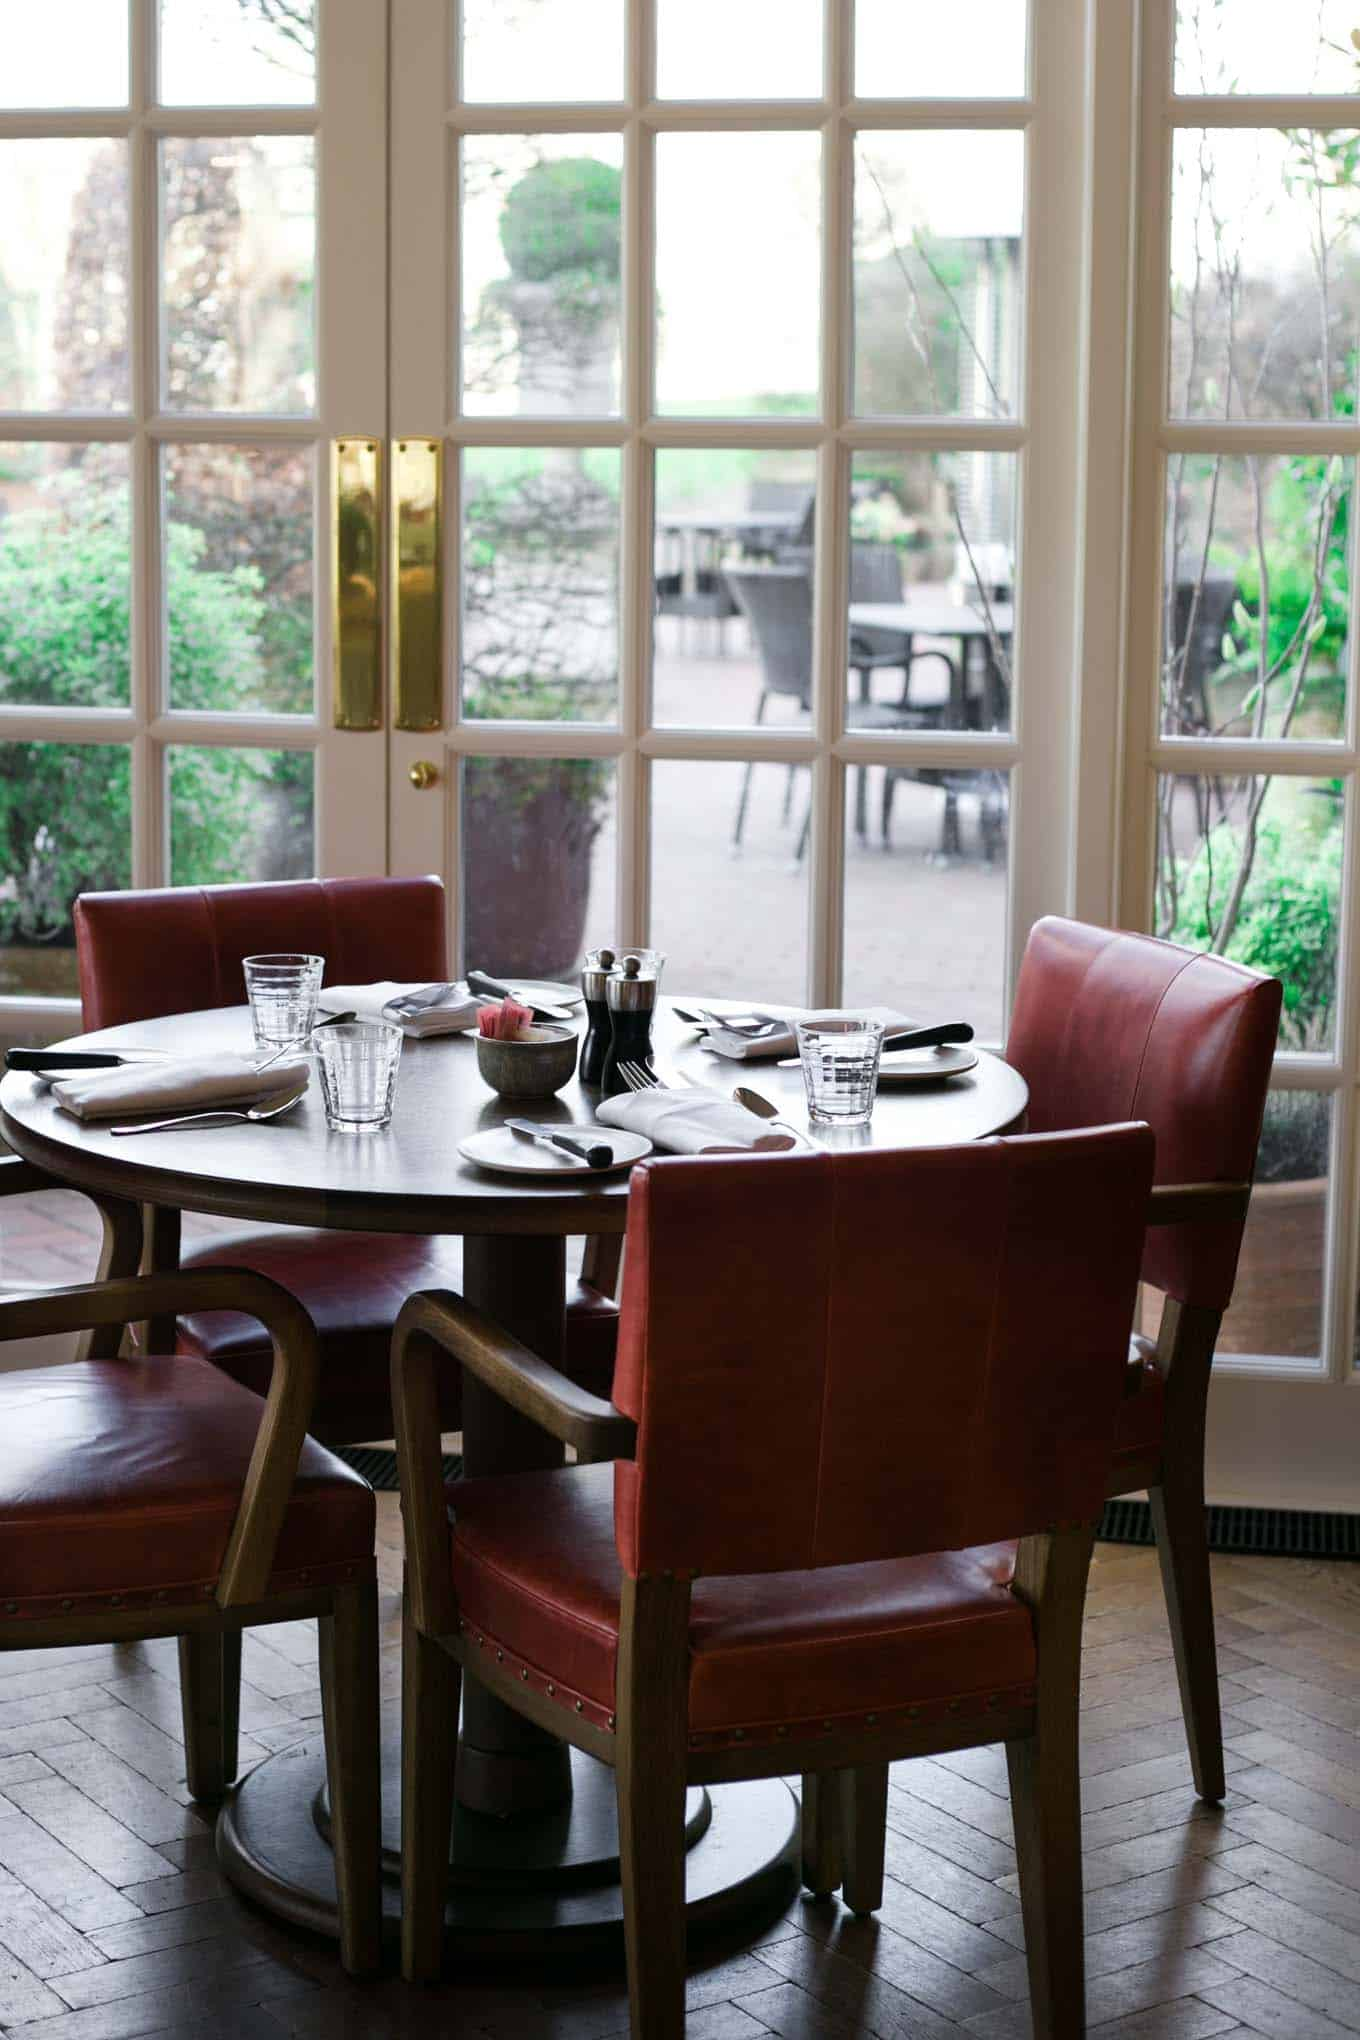 Wild Carrot Restaurant and Bar at Four Seasons Hotel Hampshire | via @annabanana.co